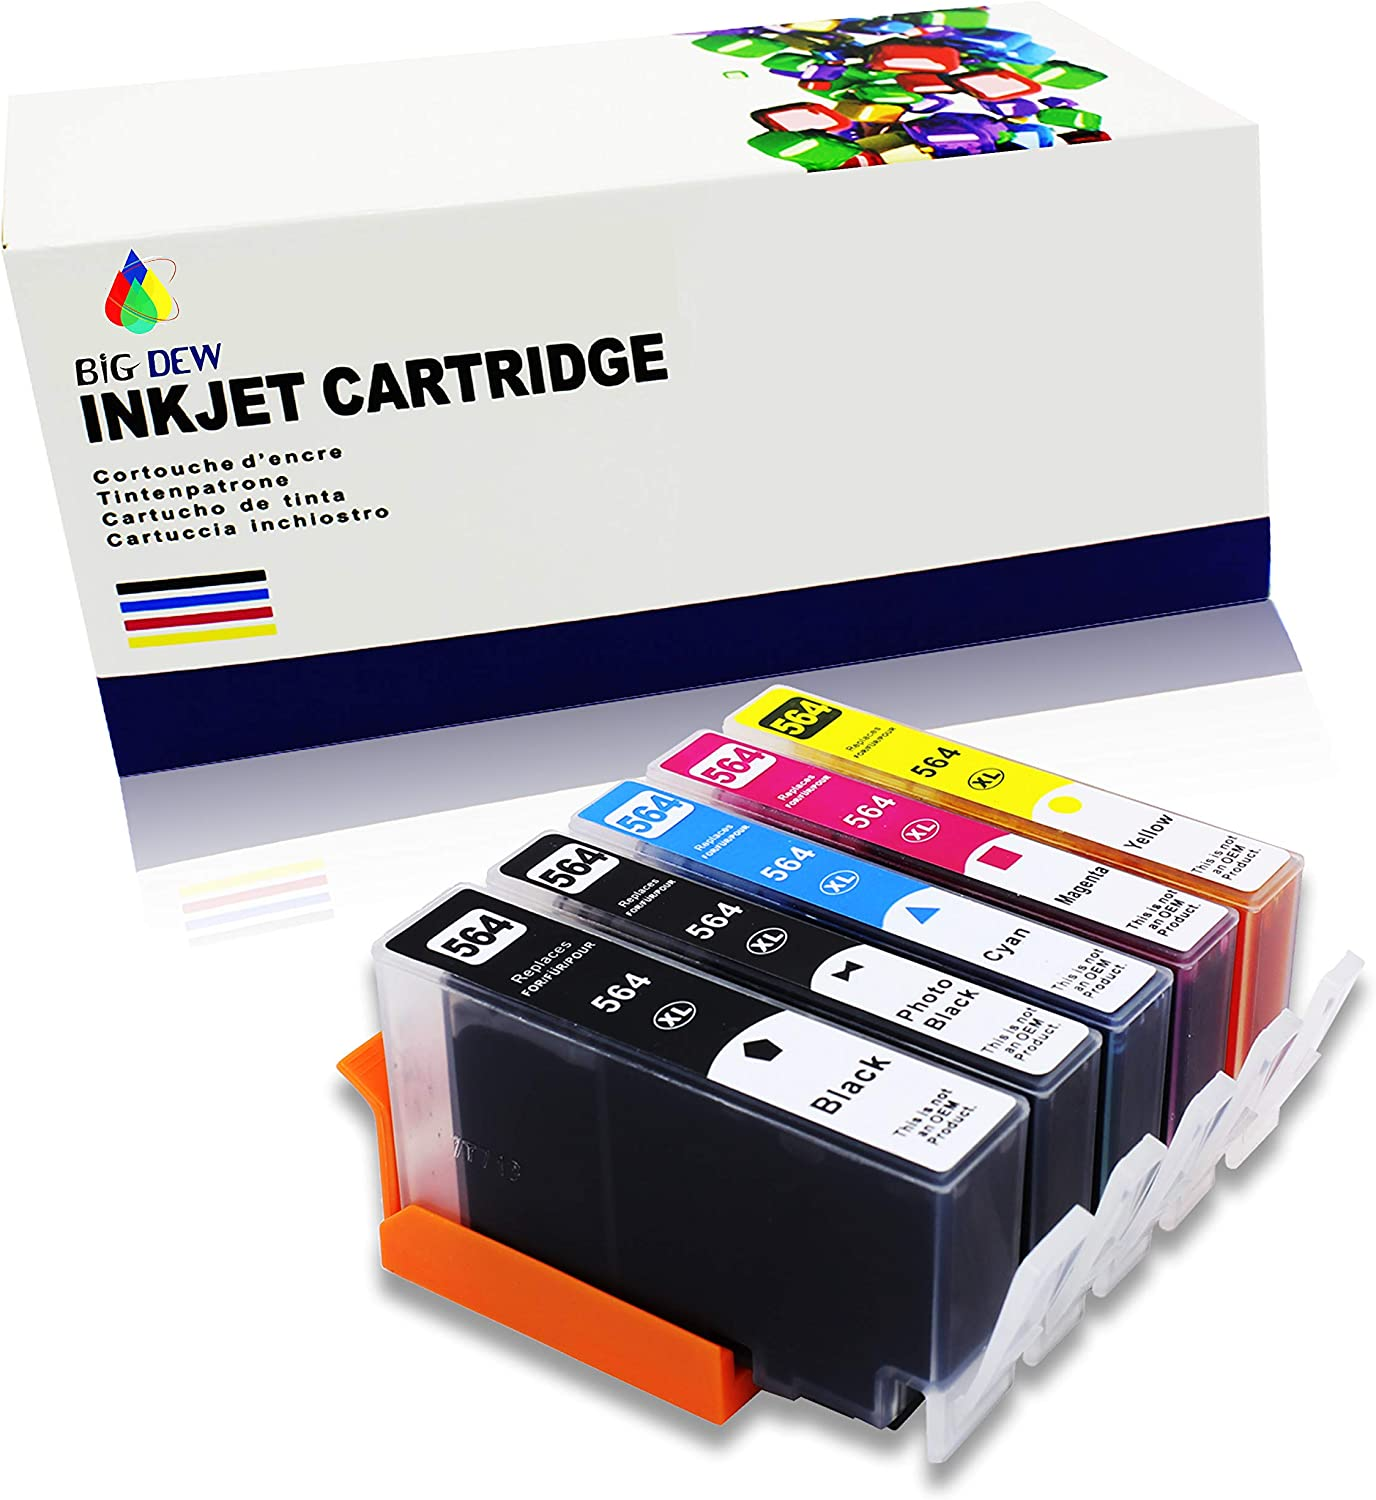 Big Dew Compatible Ink Cartridge Replacement for HP 564XL 564 Ink Cartridges Use in PhotoSmart 7510 7515 7520 7525 B109 B8550 C309 C410 C510 C5300 C6300 D5400 D7500 C310 (5-Pack)